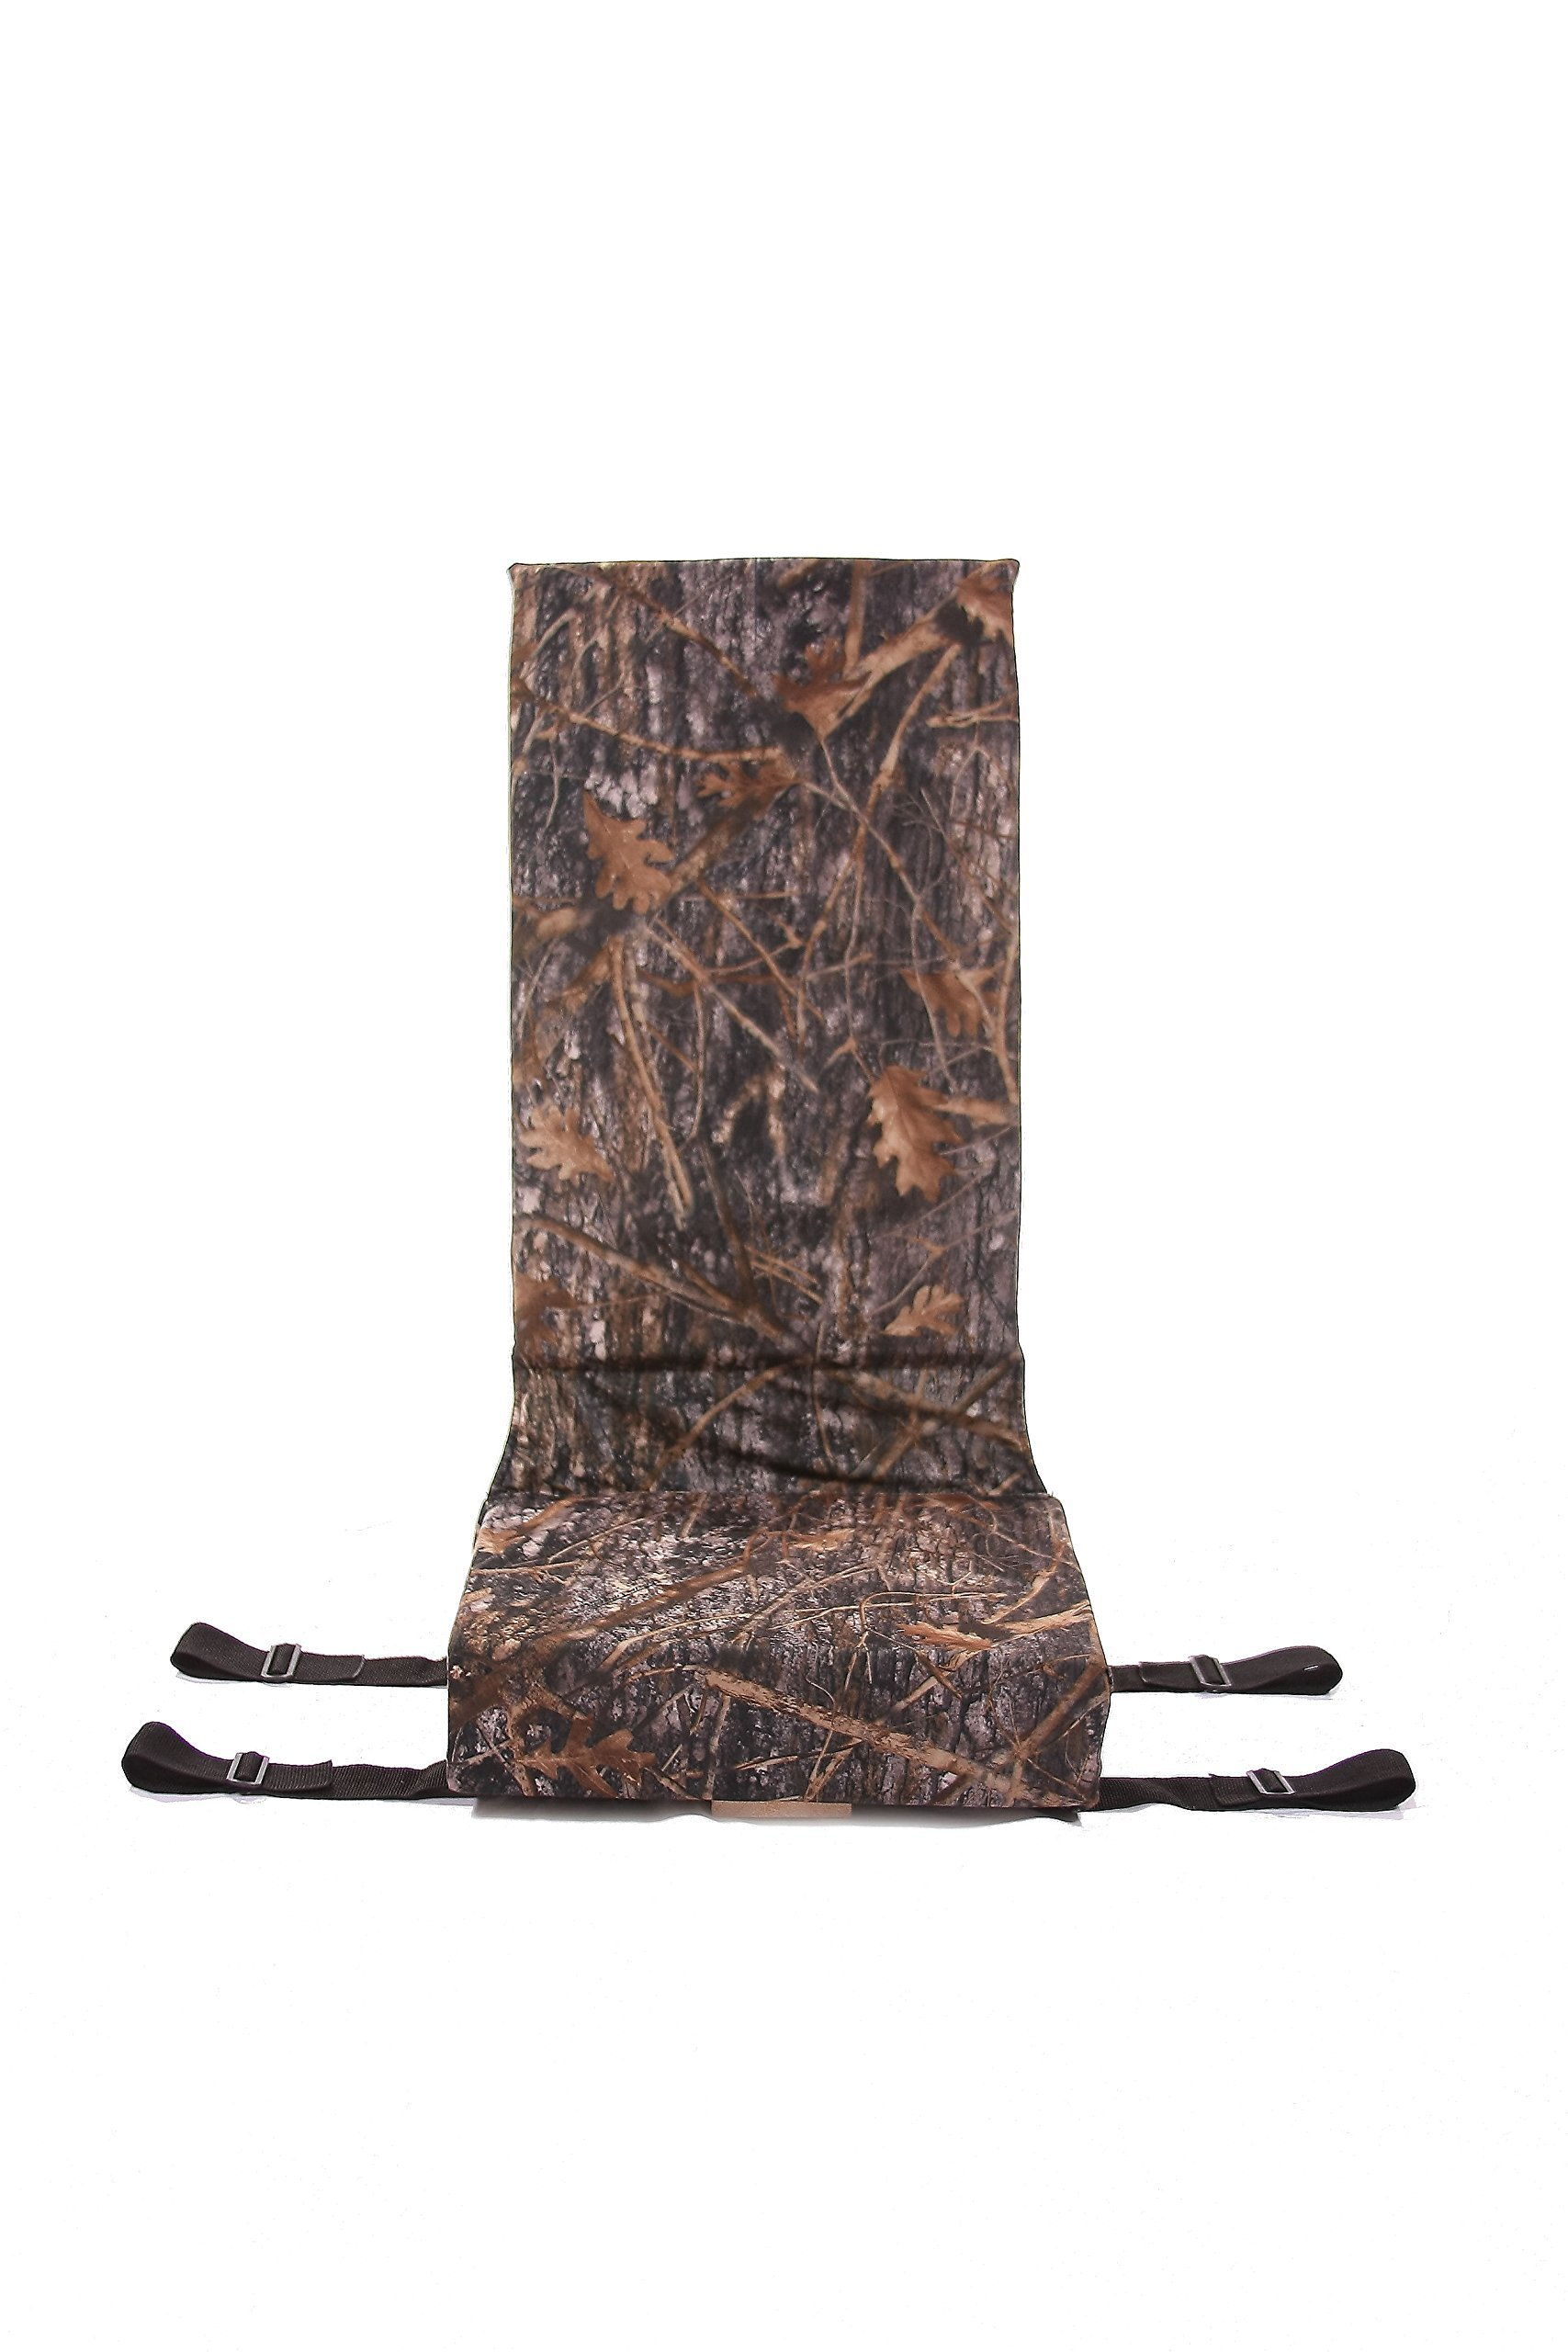 Best Rated In Hunting Seats Amp Helpful Customer Reviews